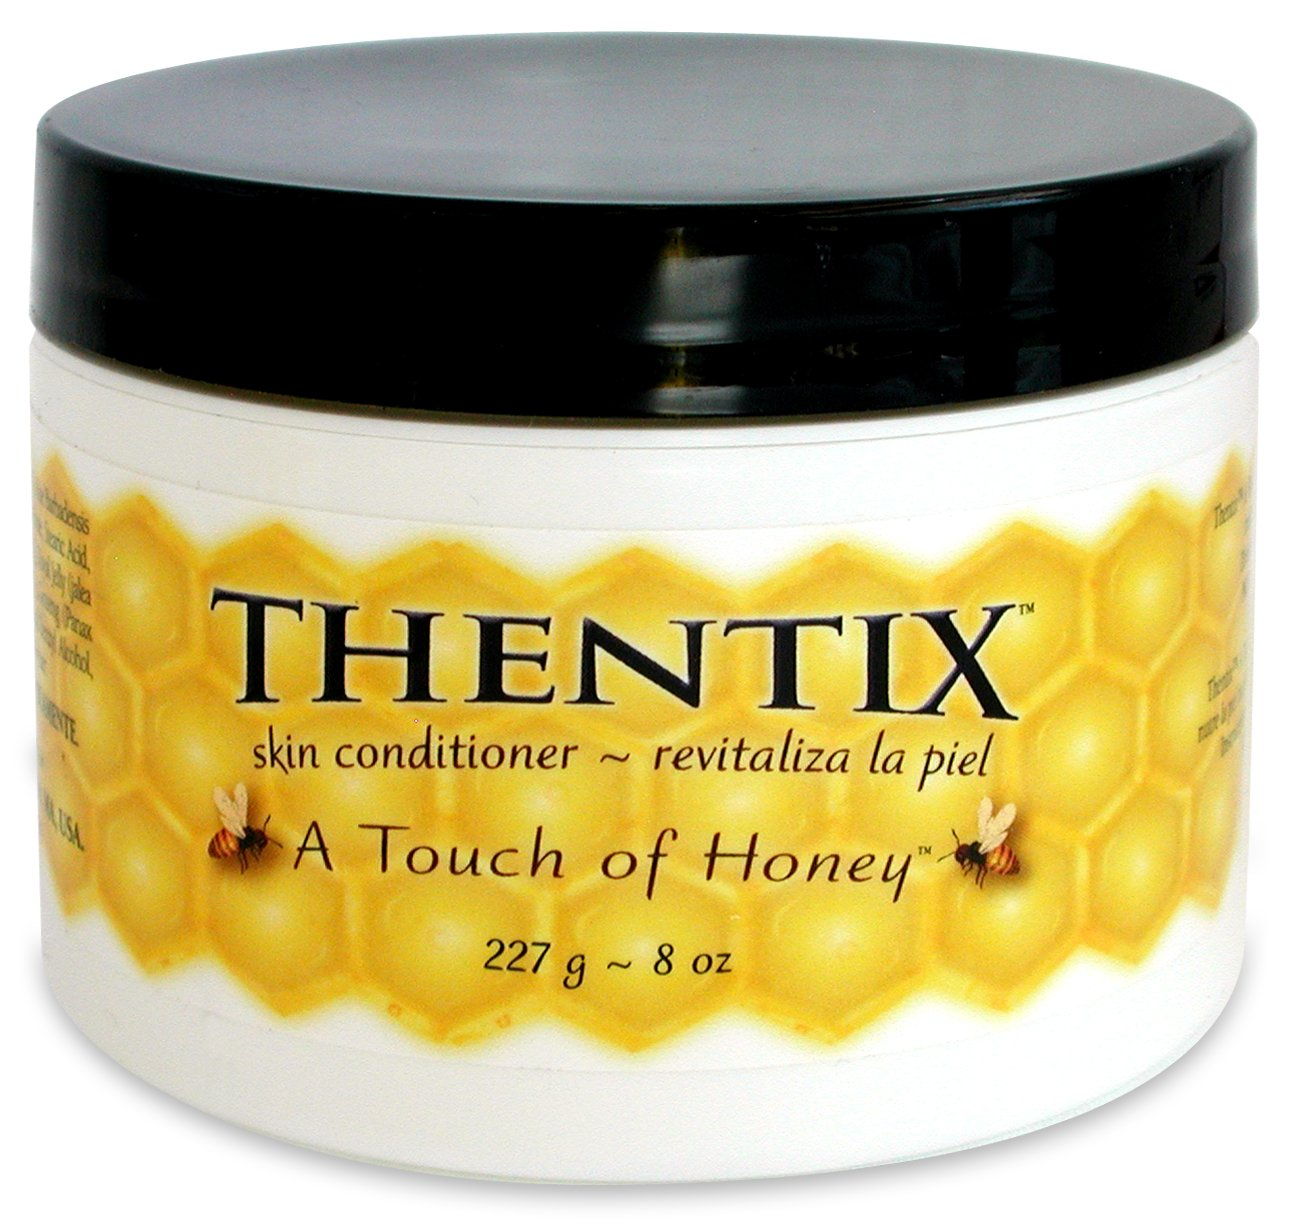 """Thentix"""" Skin Conditioner With A Touch Of Honey 8 Oz. (Ideal For 60 Different Ailments!)"""